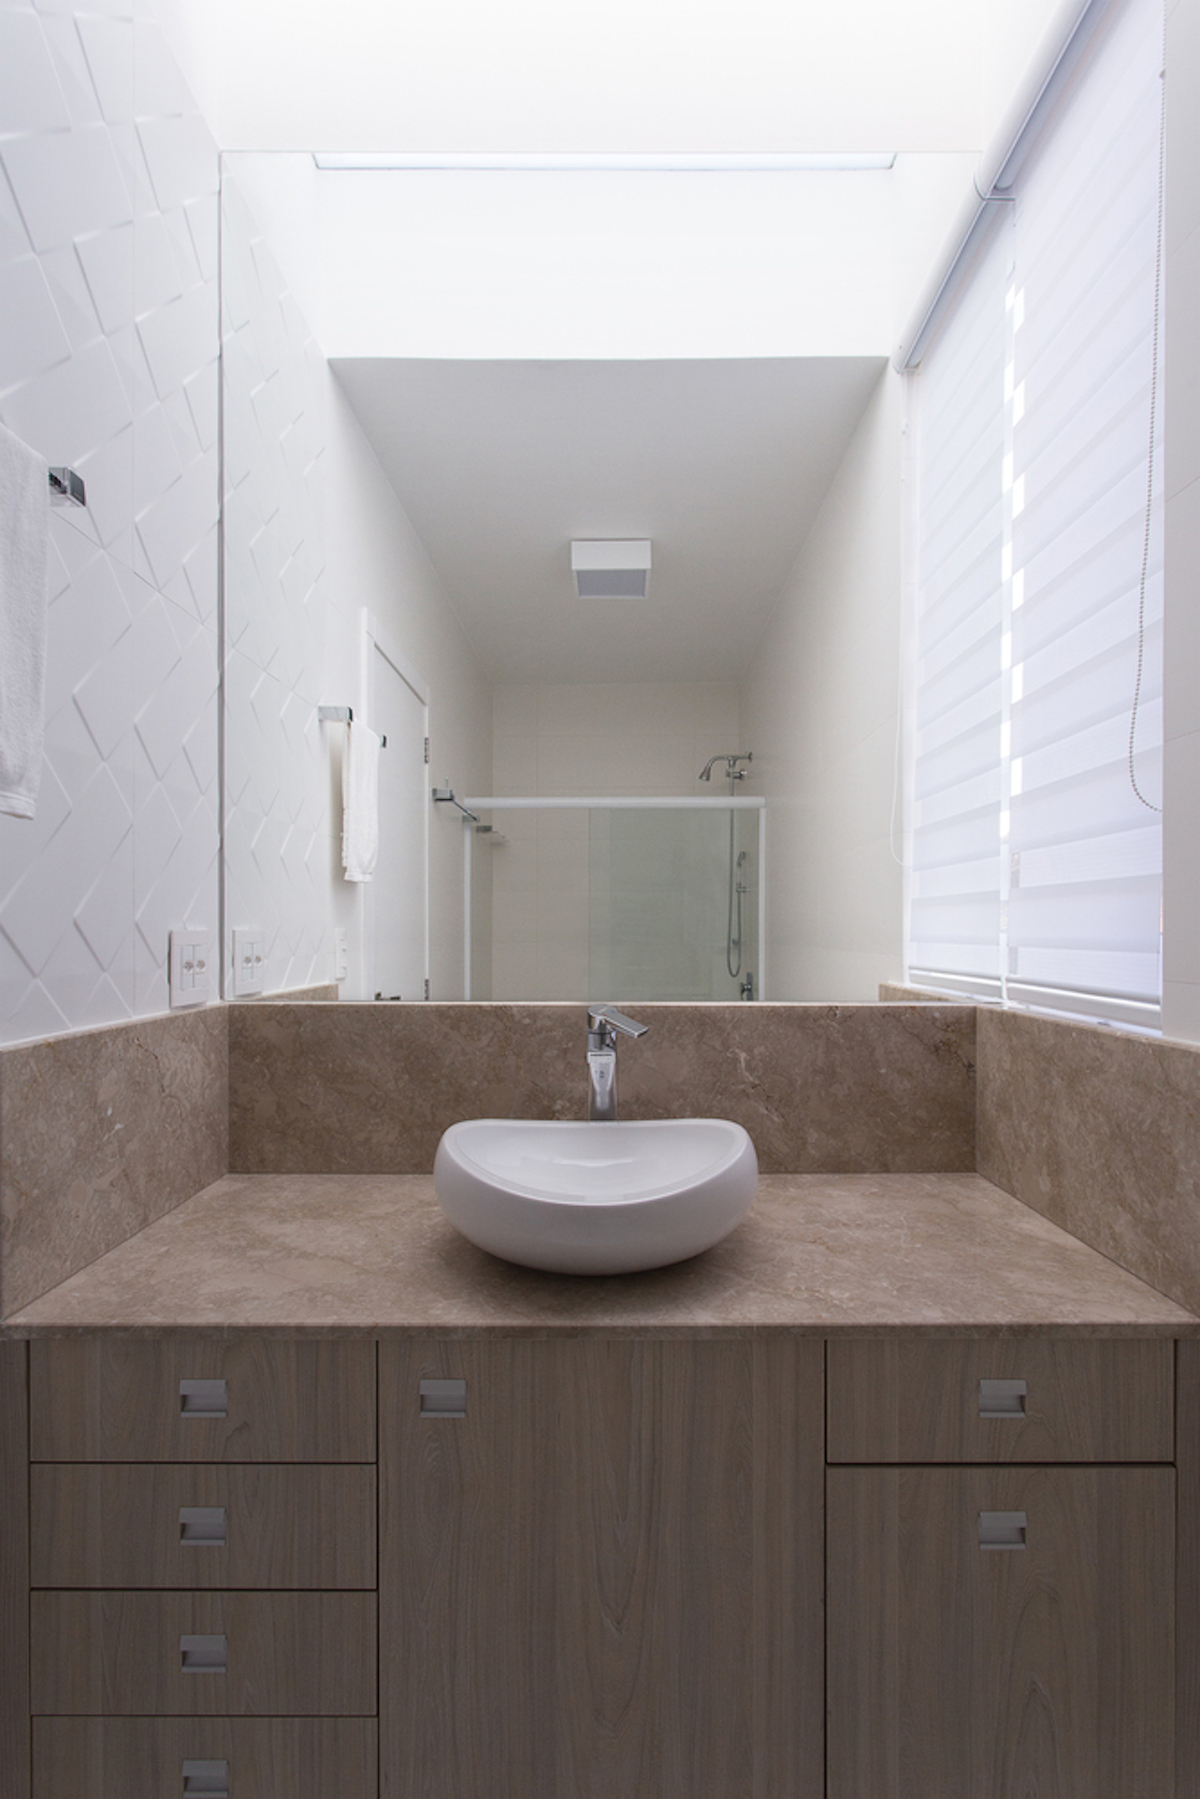 A large mirror visually enlarges the small bathroom while the textured tiles give it character